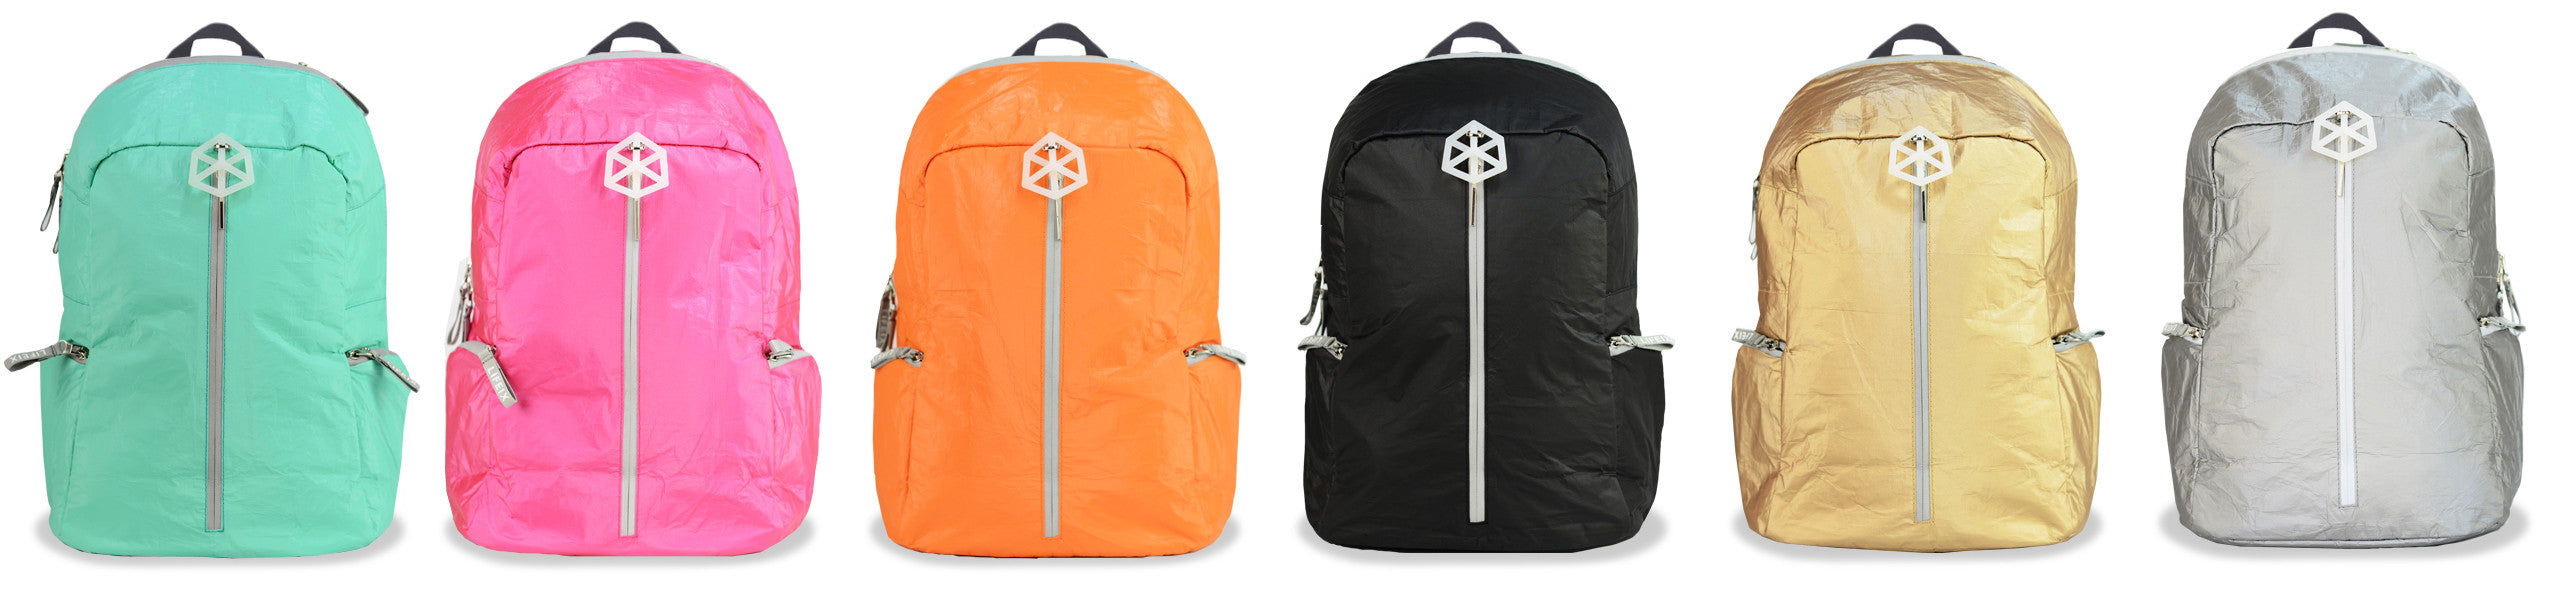 paper backpack by Lifeix